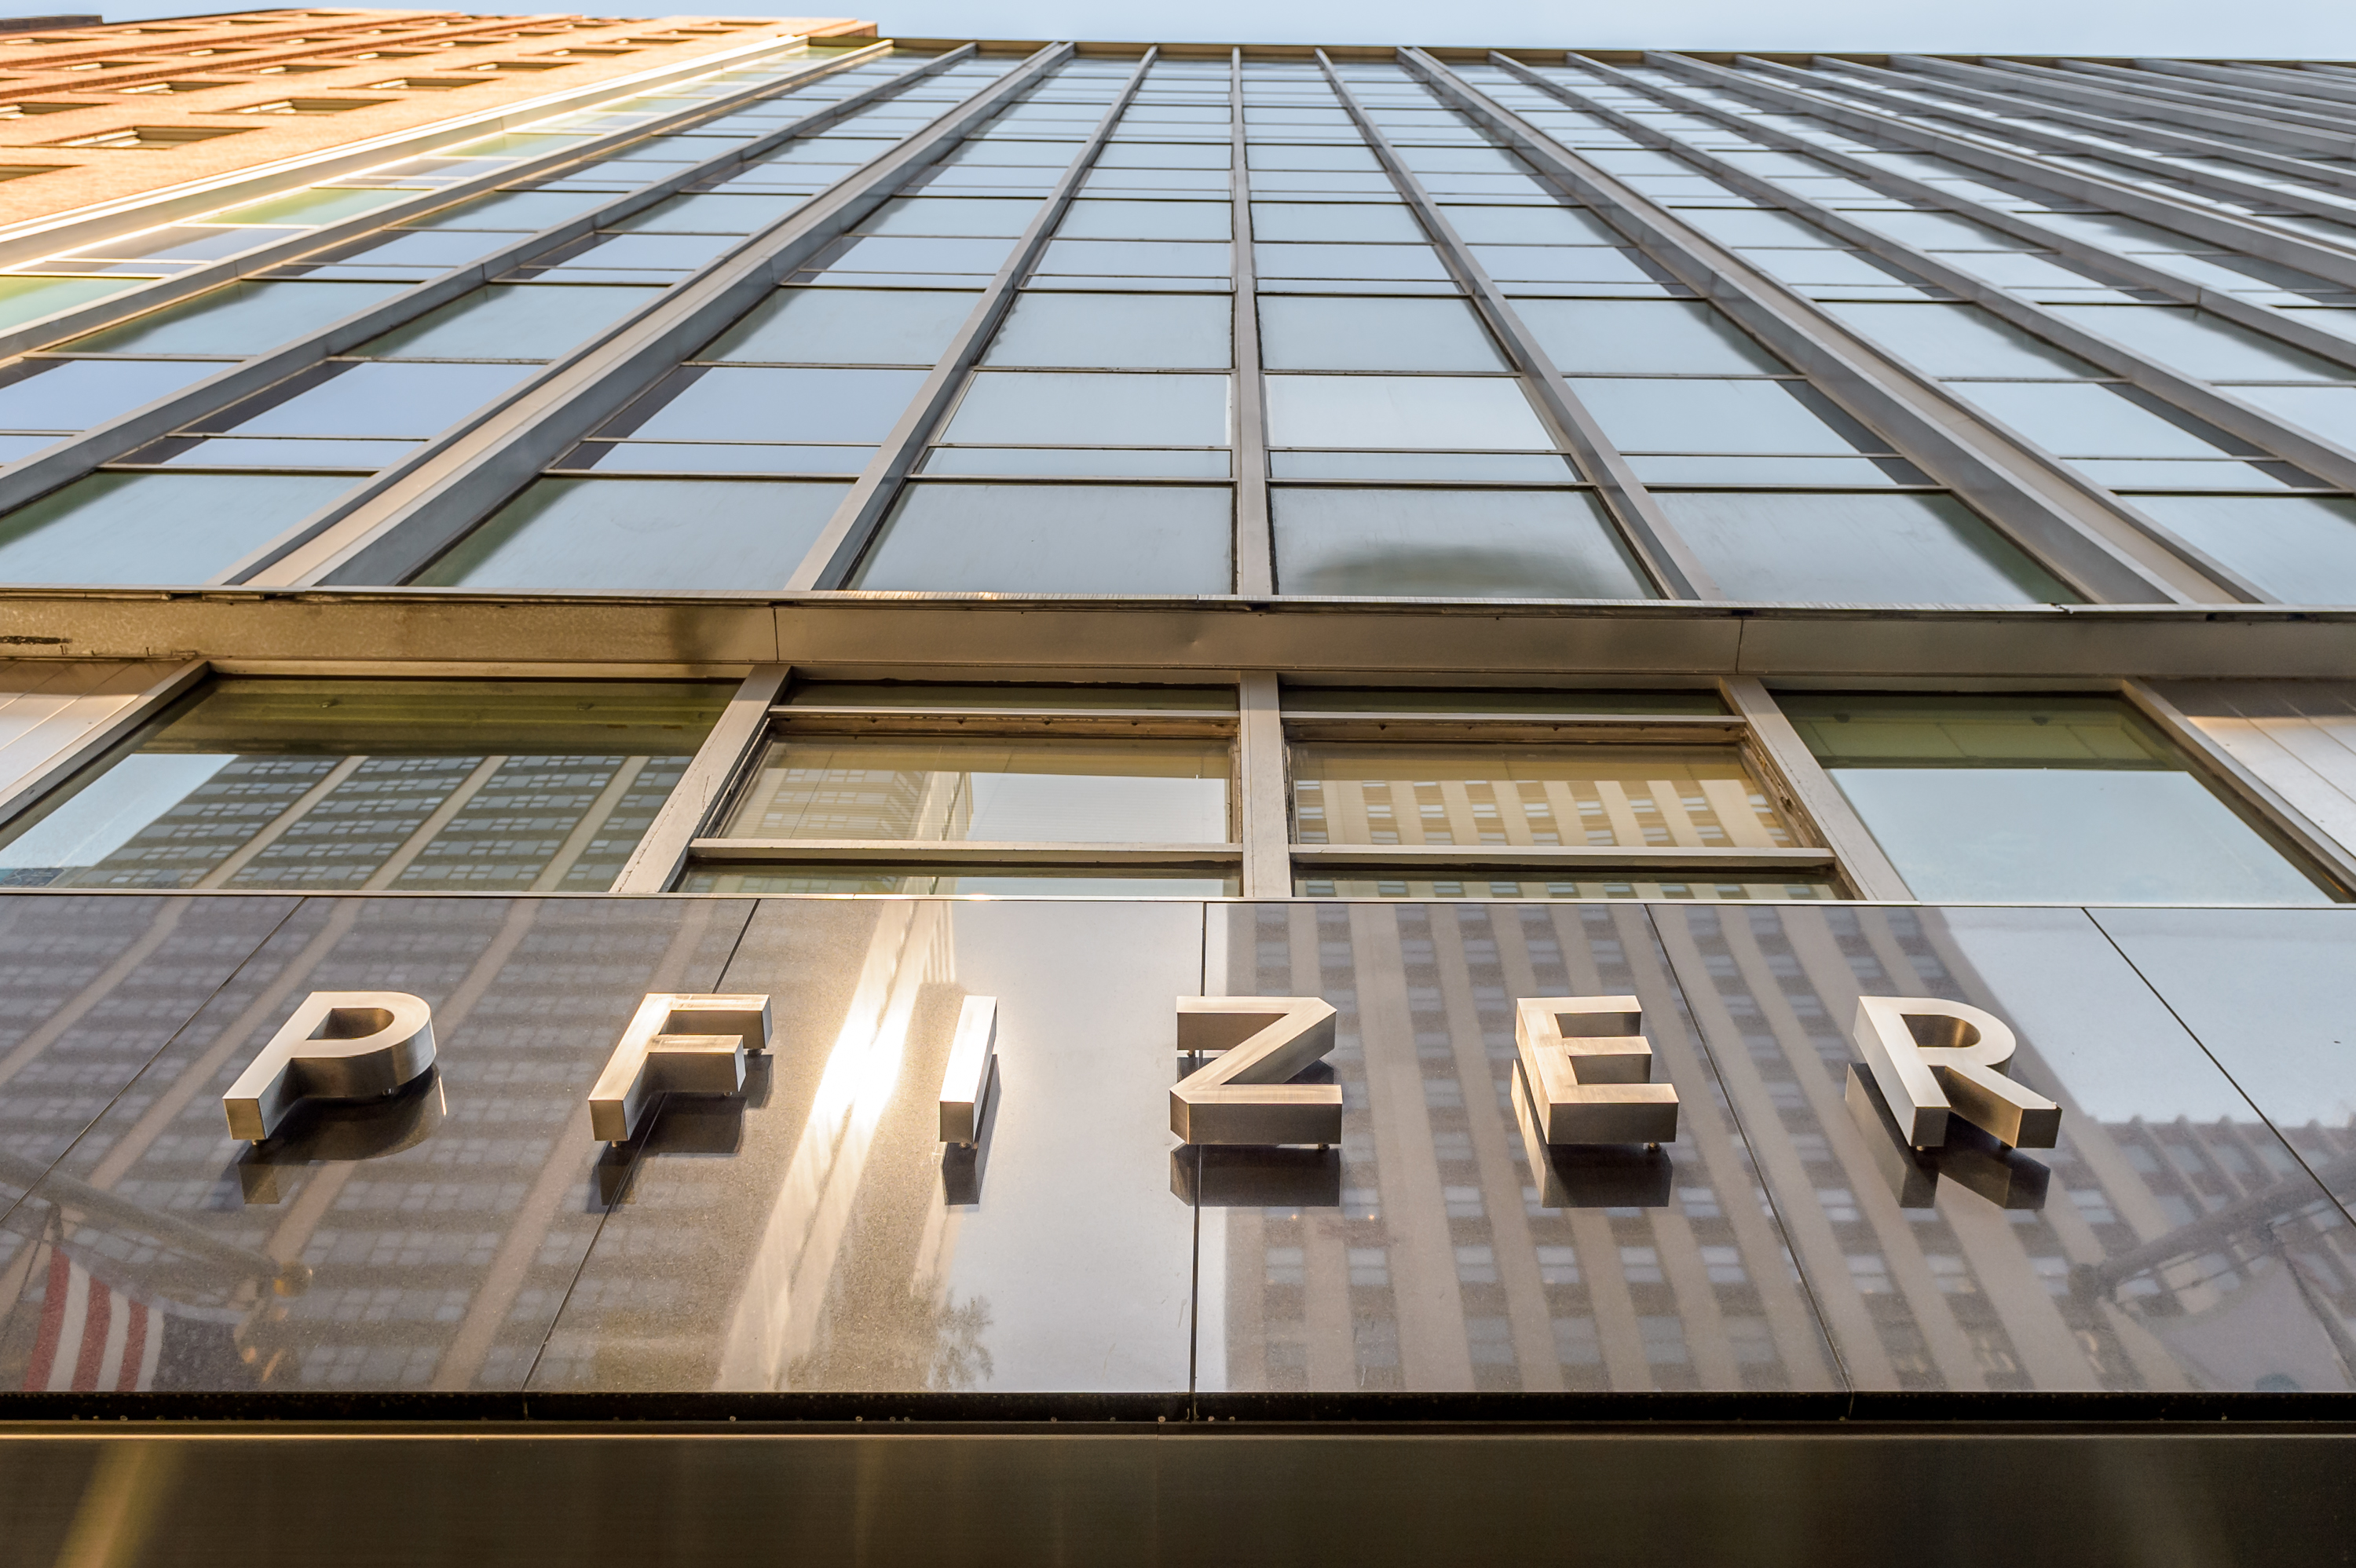 Pfizer New York Headquarters - Pfizer announced a $14